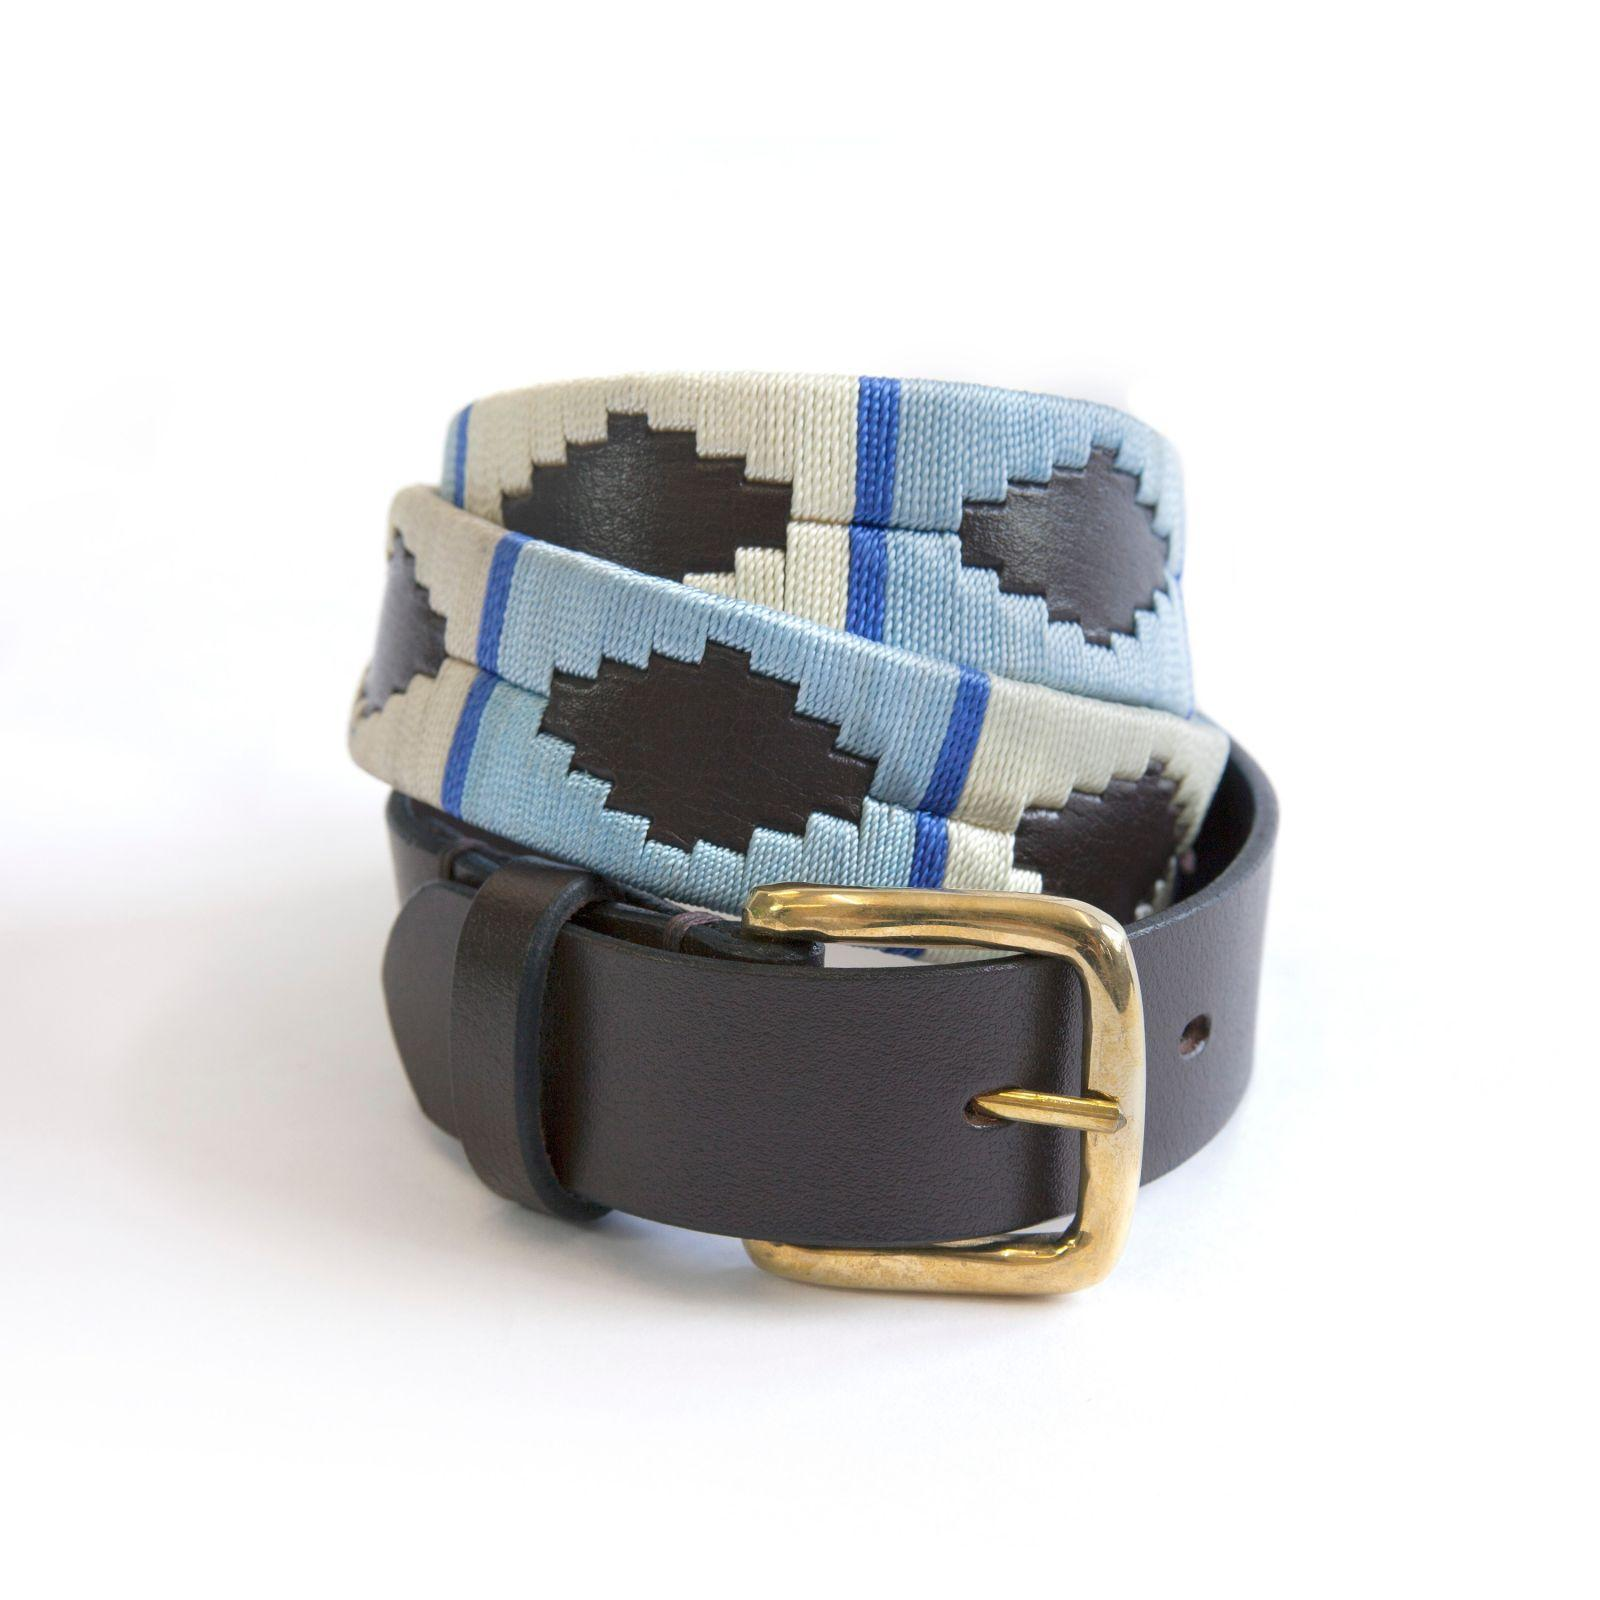 KM Polo Belt - Ice Cool